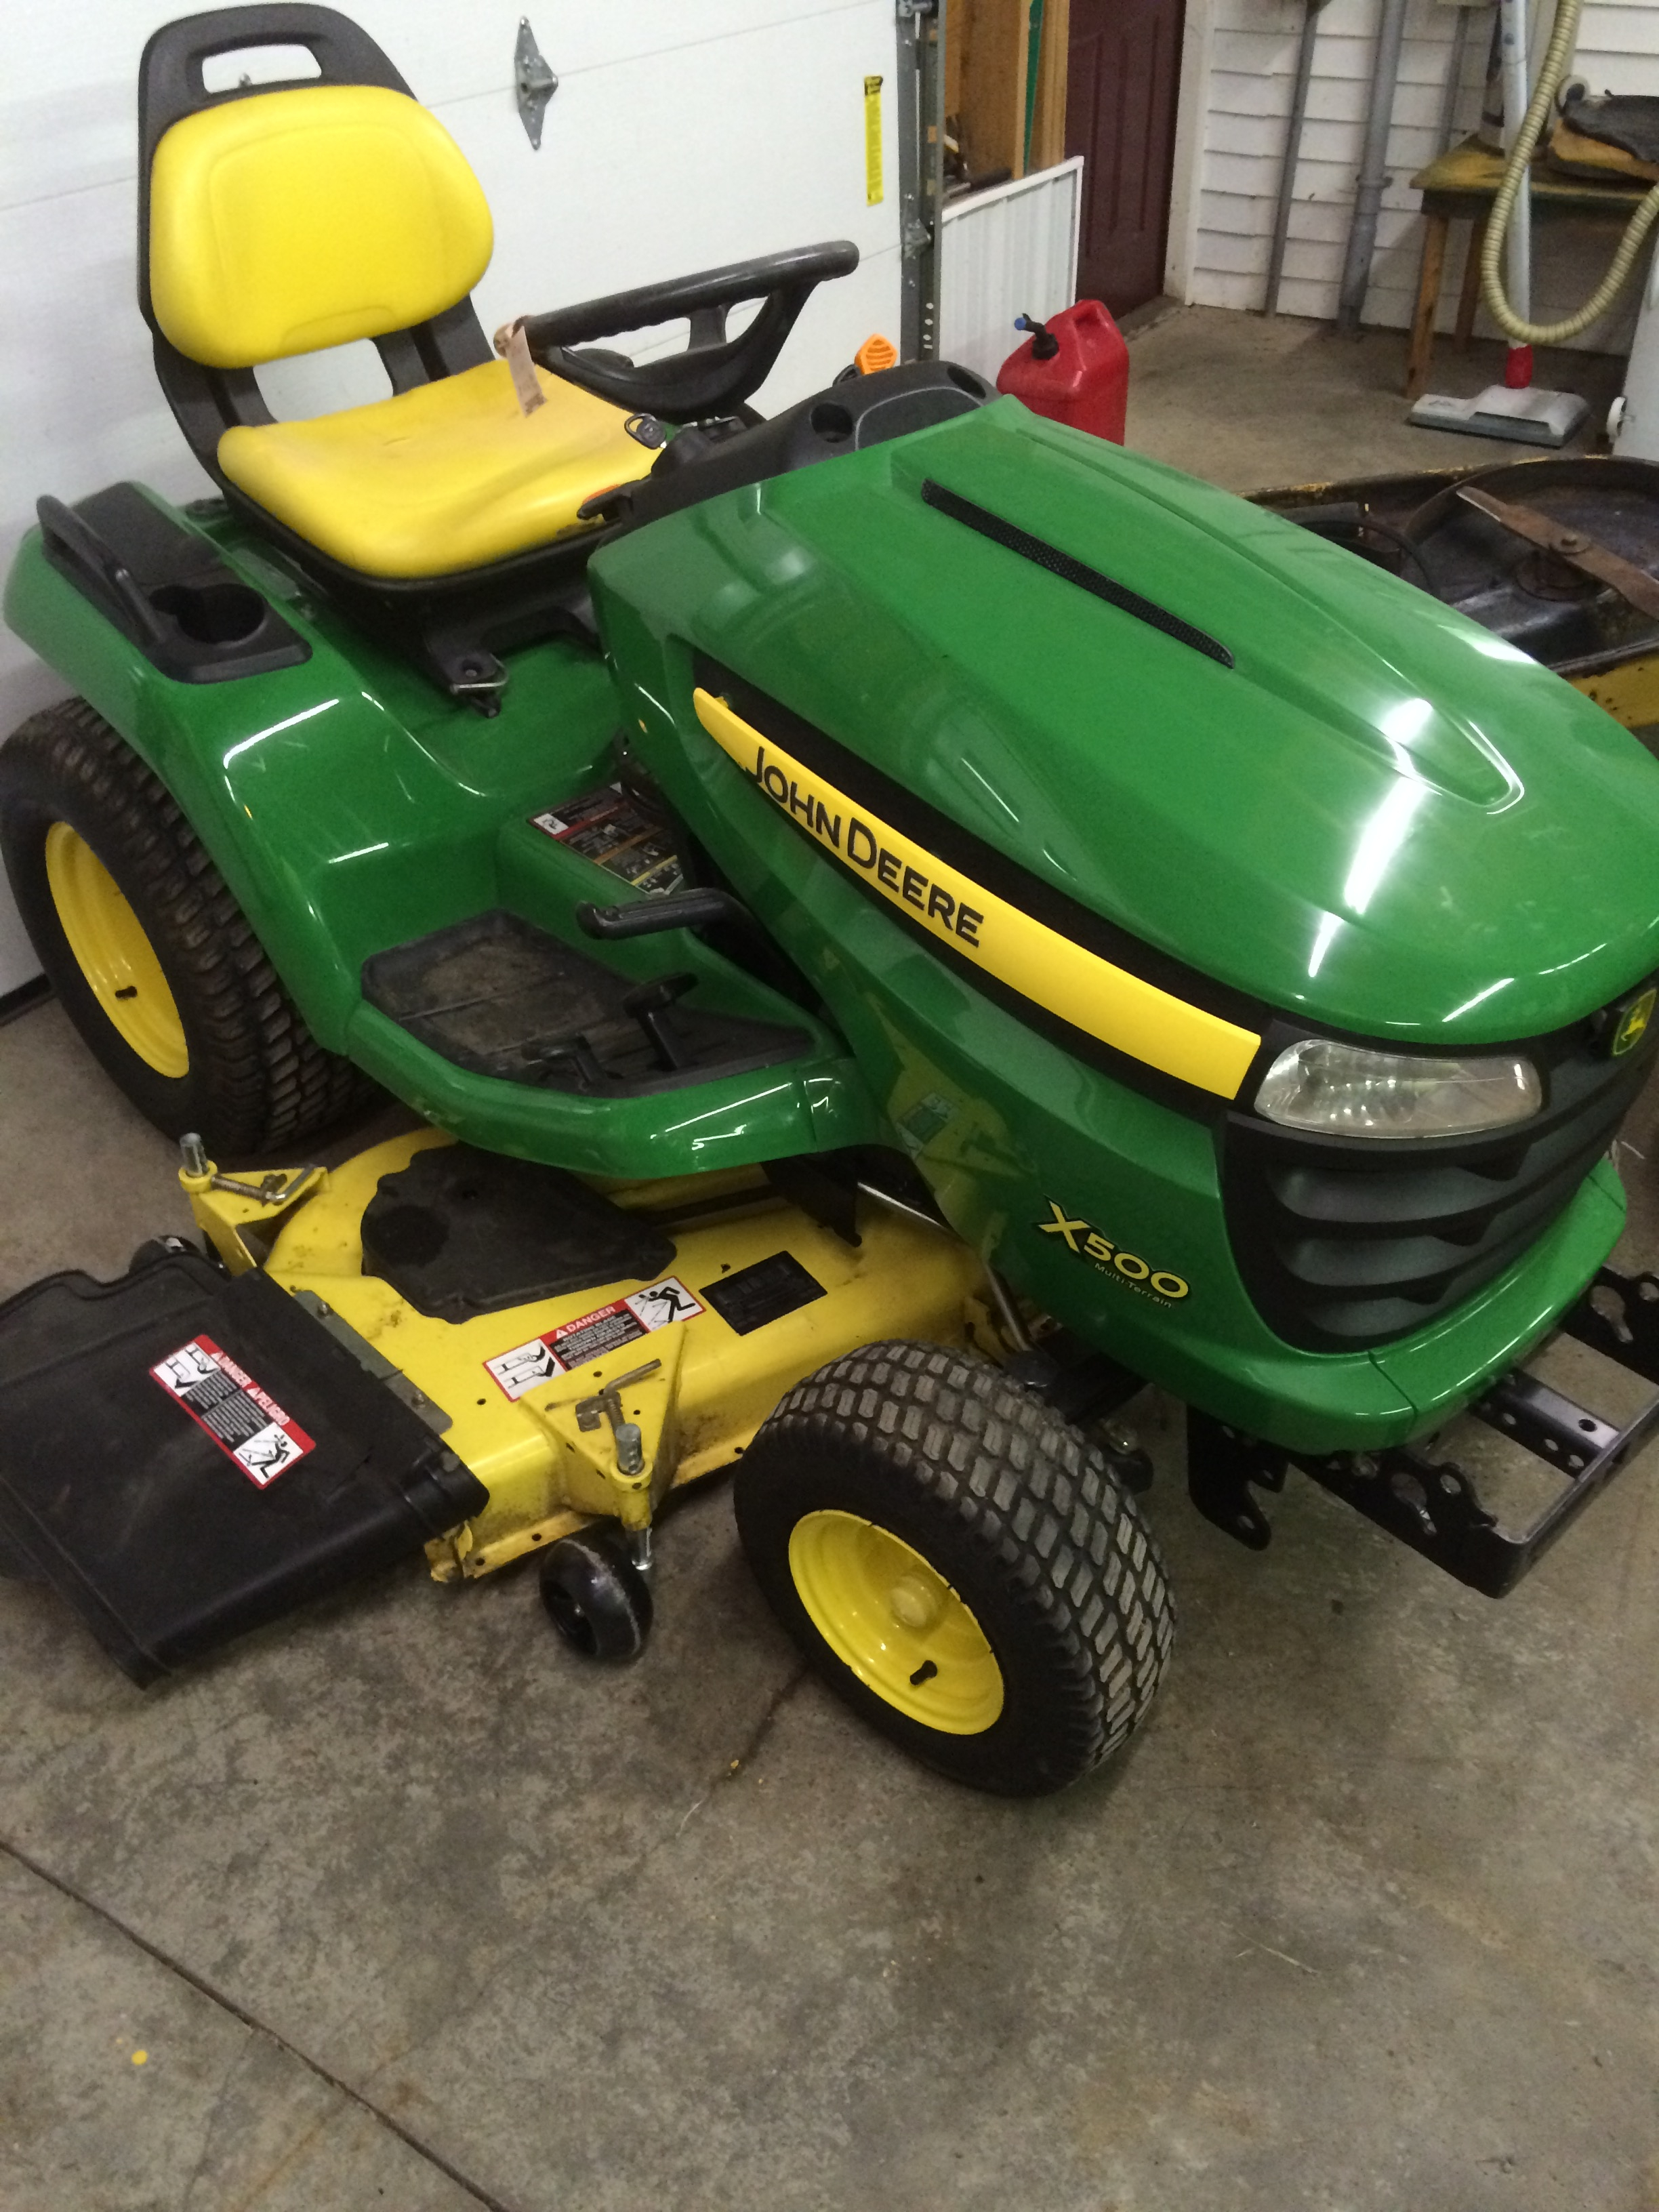 john deere x500 doc s repair shop small engine sales and service rh docsrepairshop com john deere x500 parts manual John Deere X500 Snow Blade